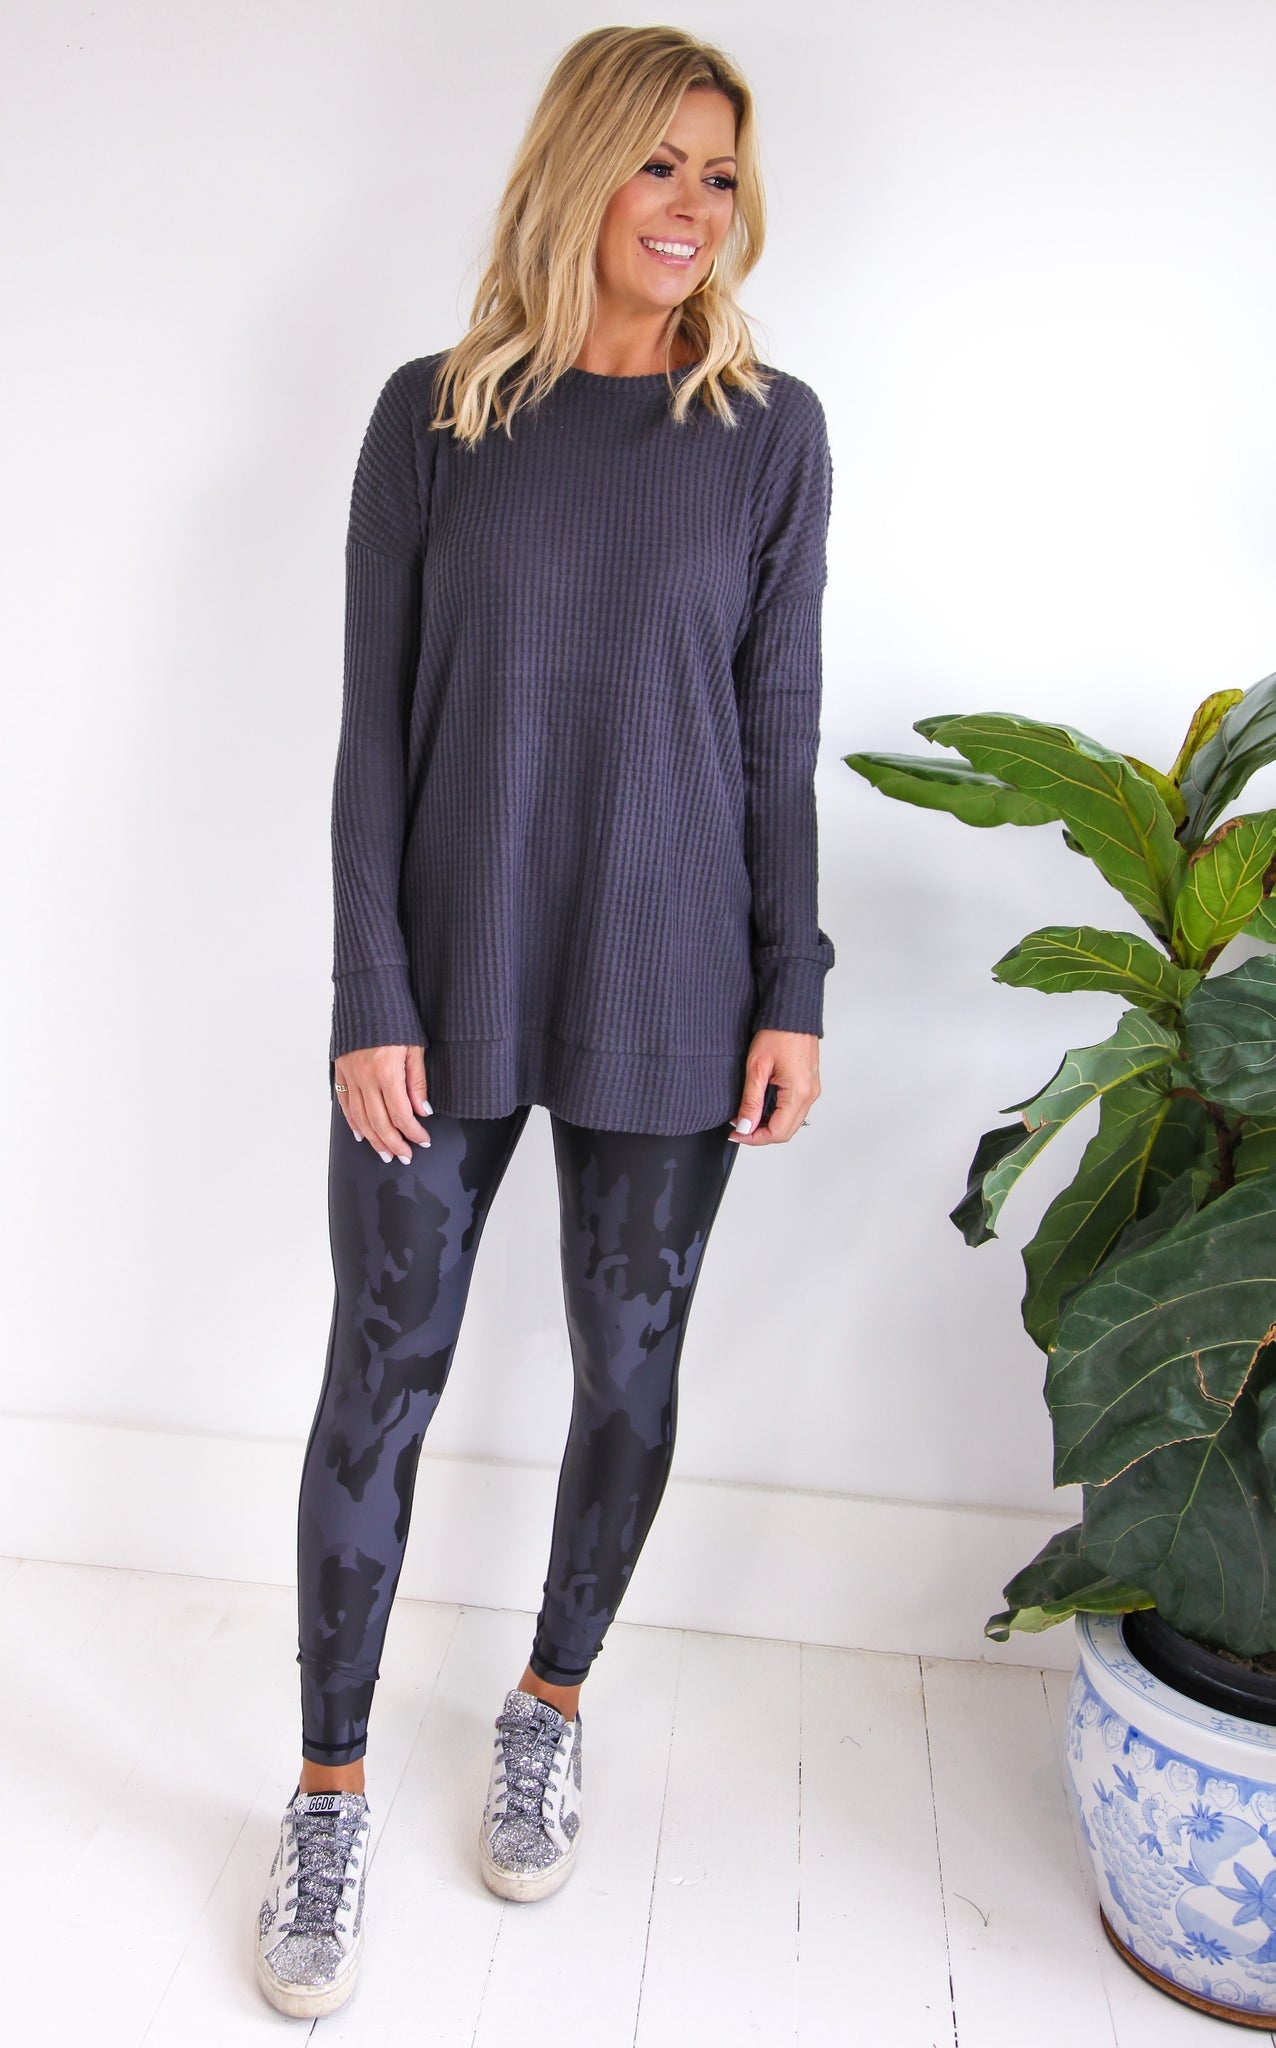 ELLE LAIN - EASY GOING THERMAL - ASH GREY